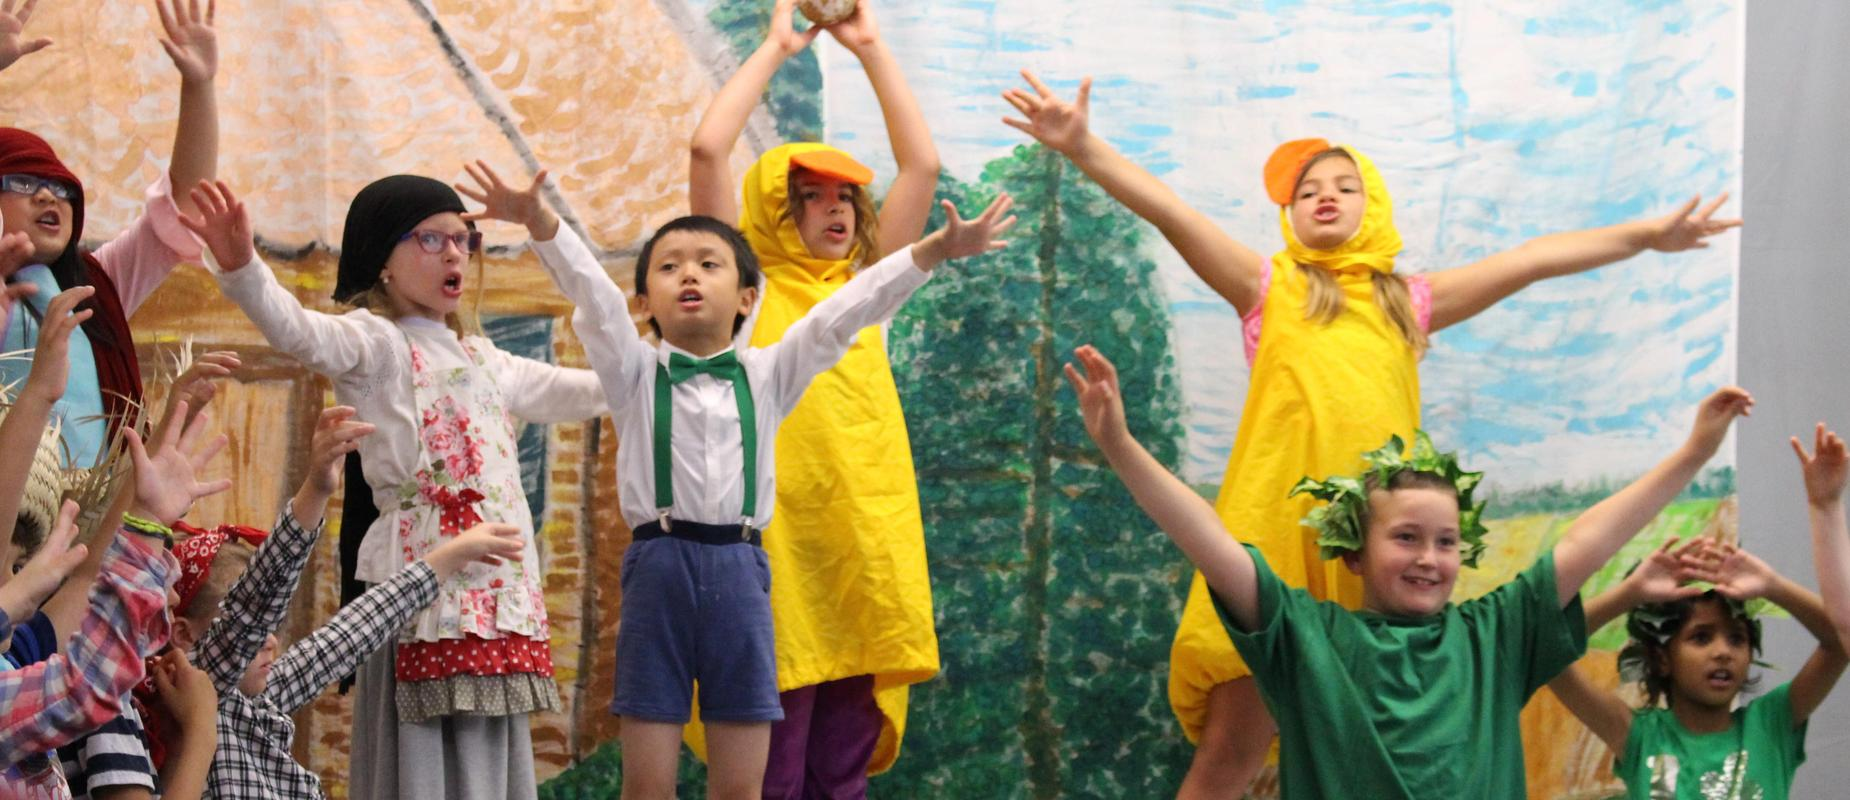 first graders perform Jack in the Beanstalk play with sky background